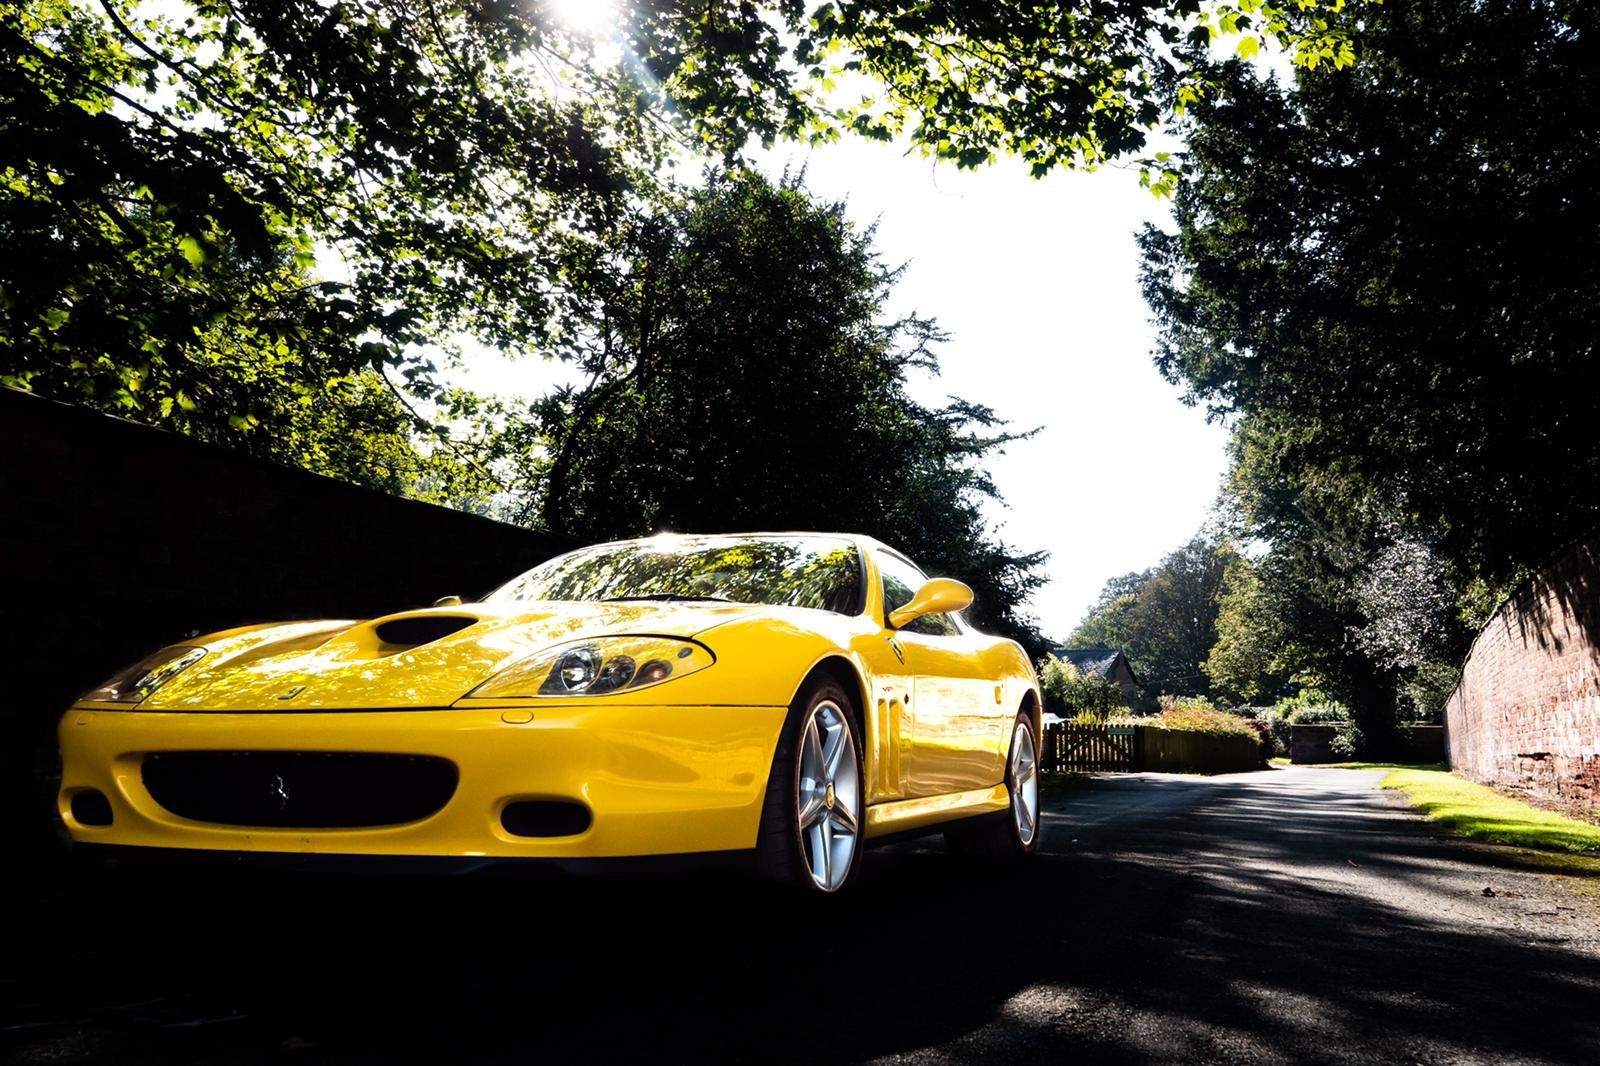 2003 Ferrari 575M ONLY YELLOW CAR FOR SALE IN THE UK For